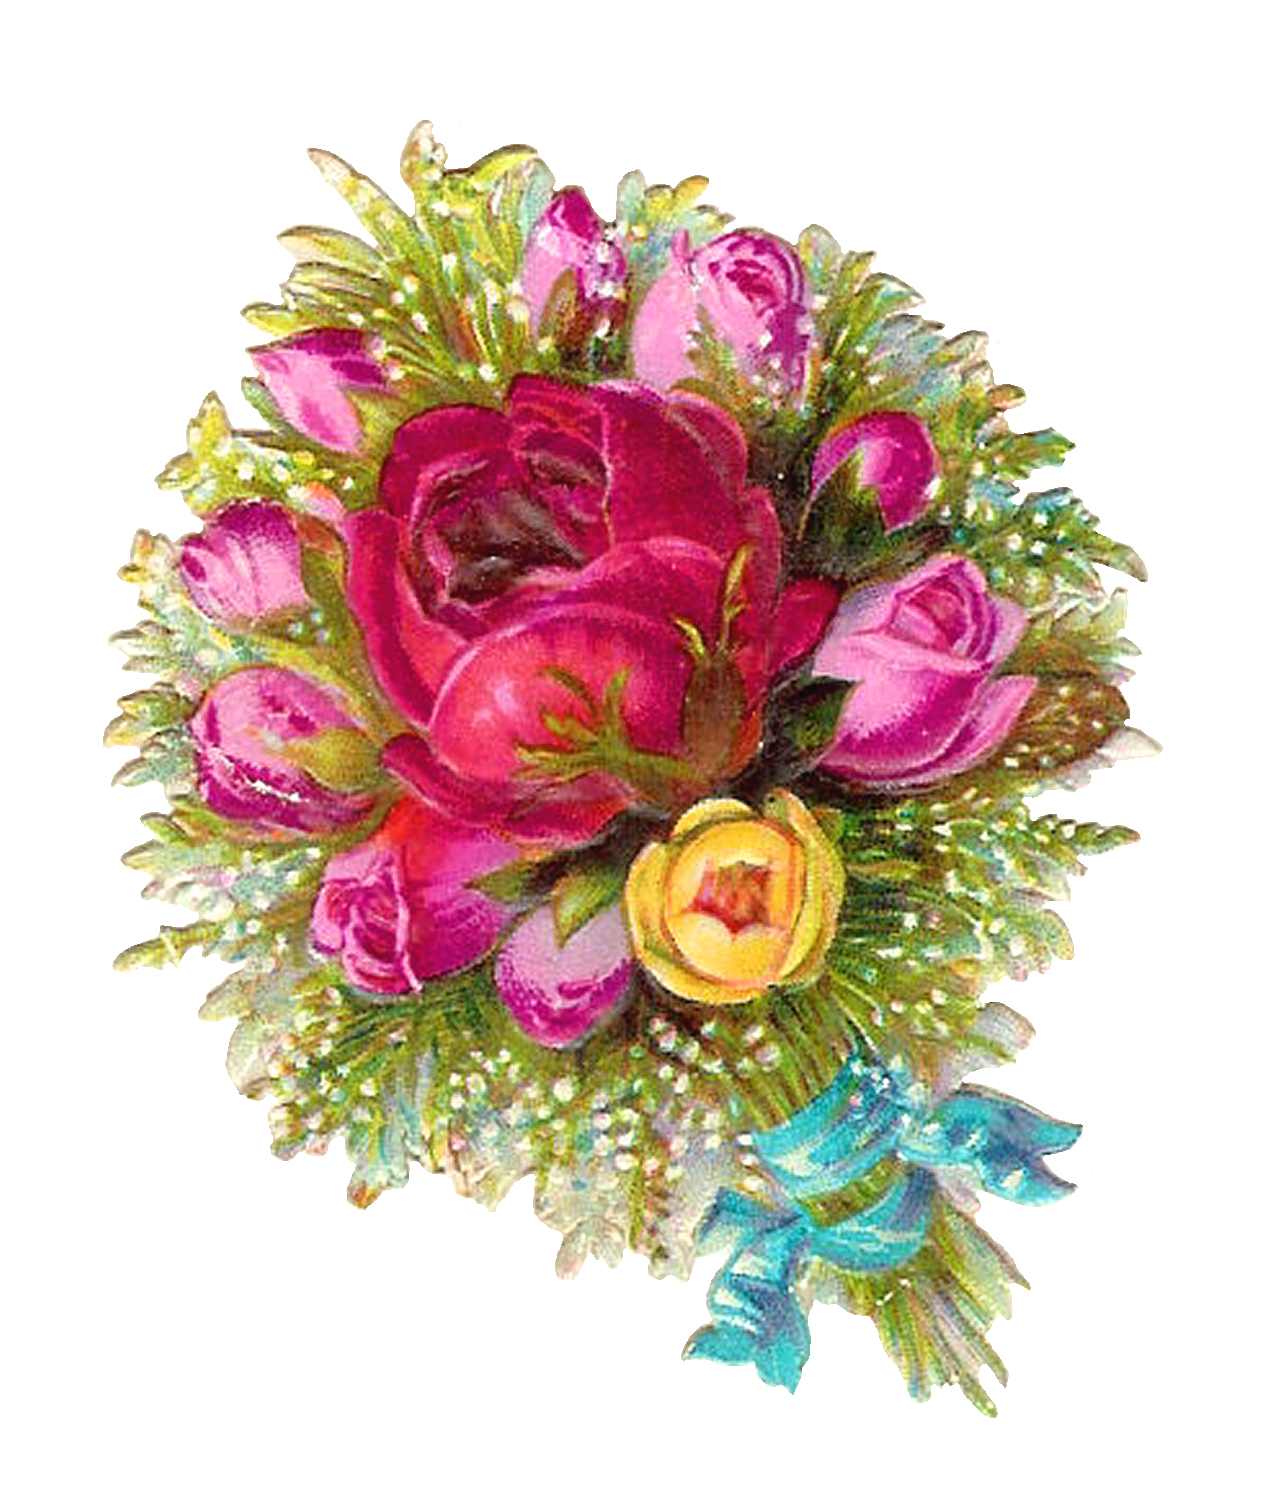 Antique Digital Scrapbooking Flower Bouquet with Pink and Yellow Rose